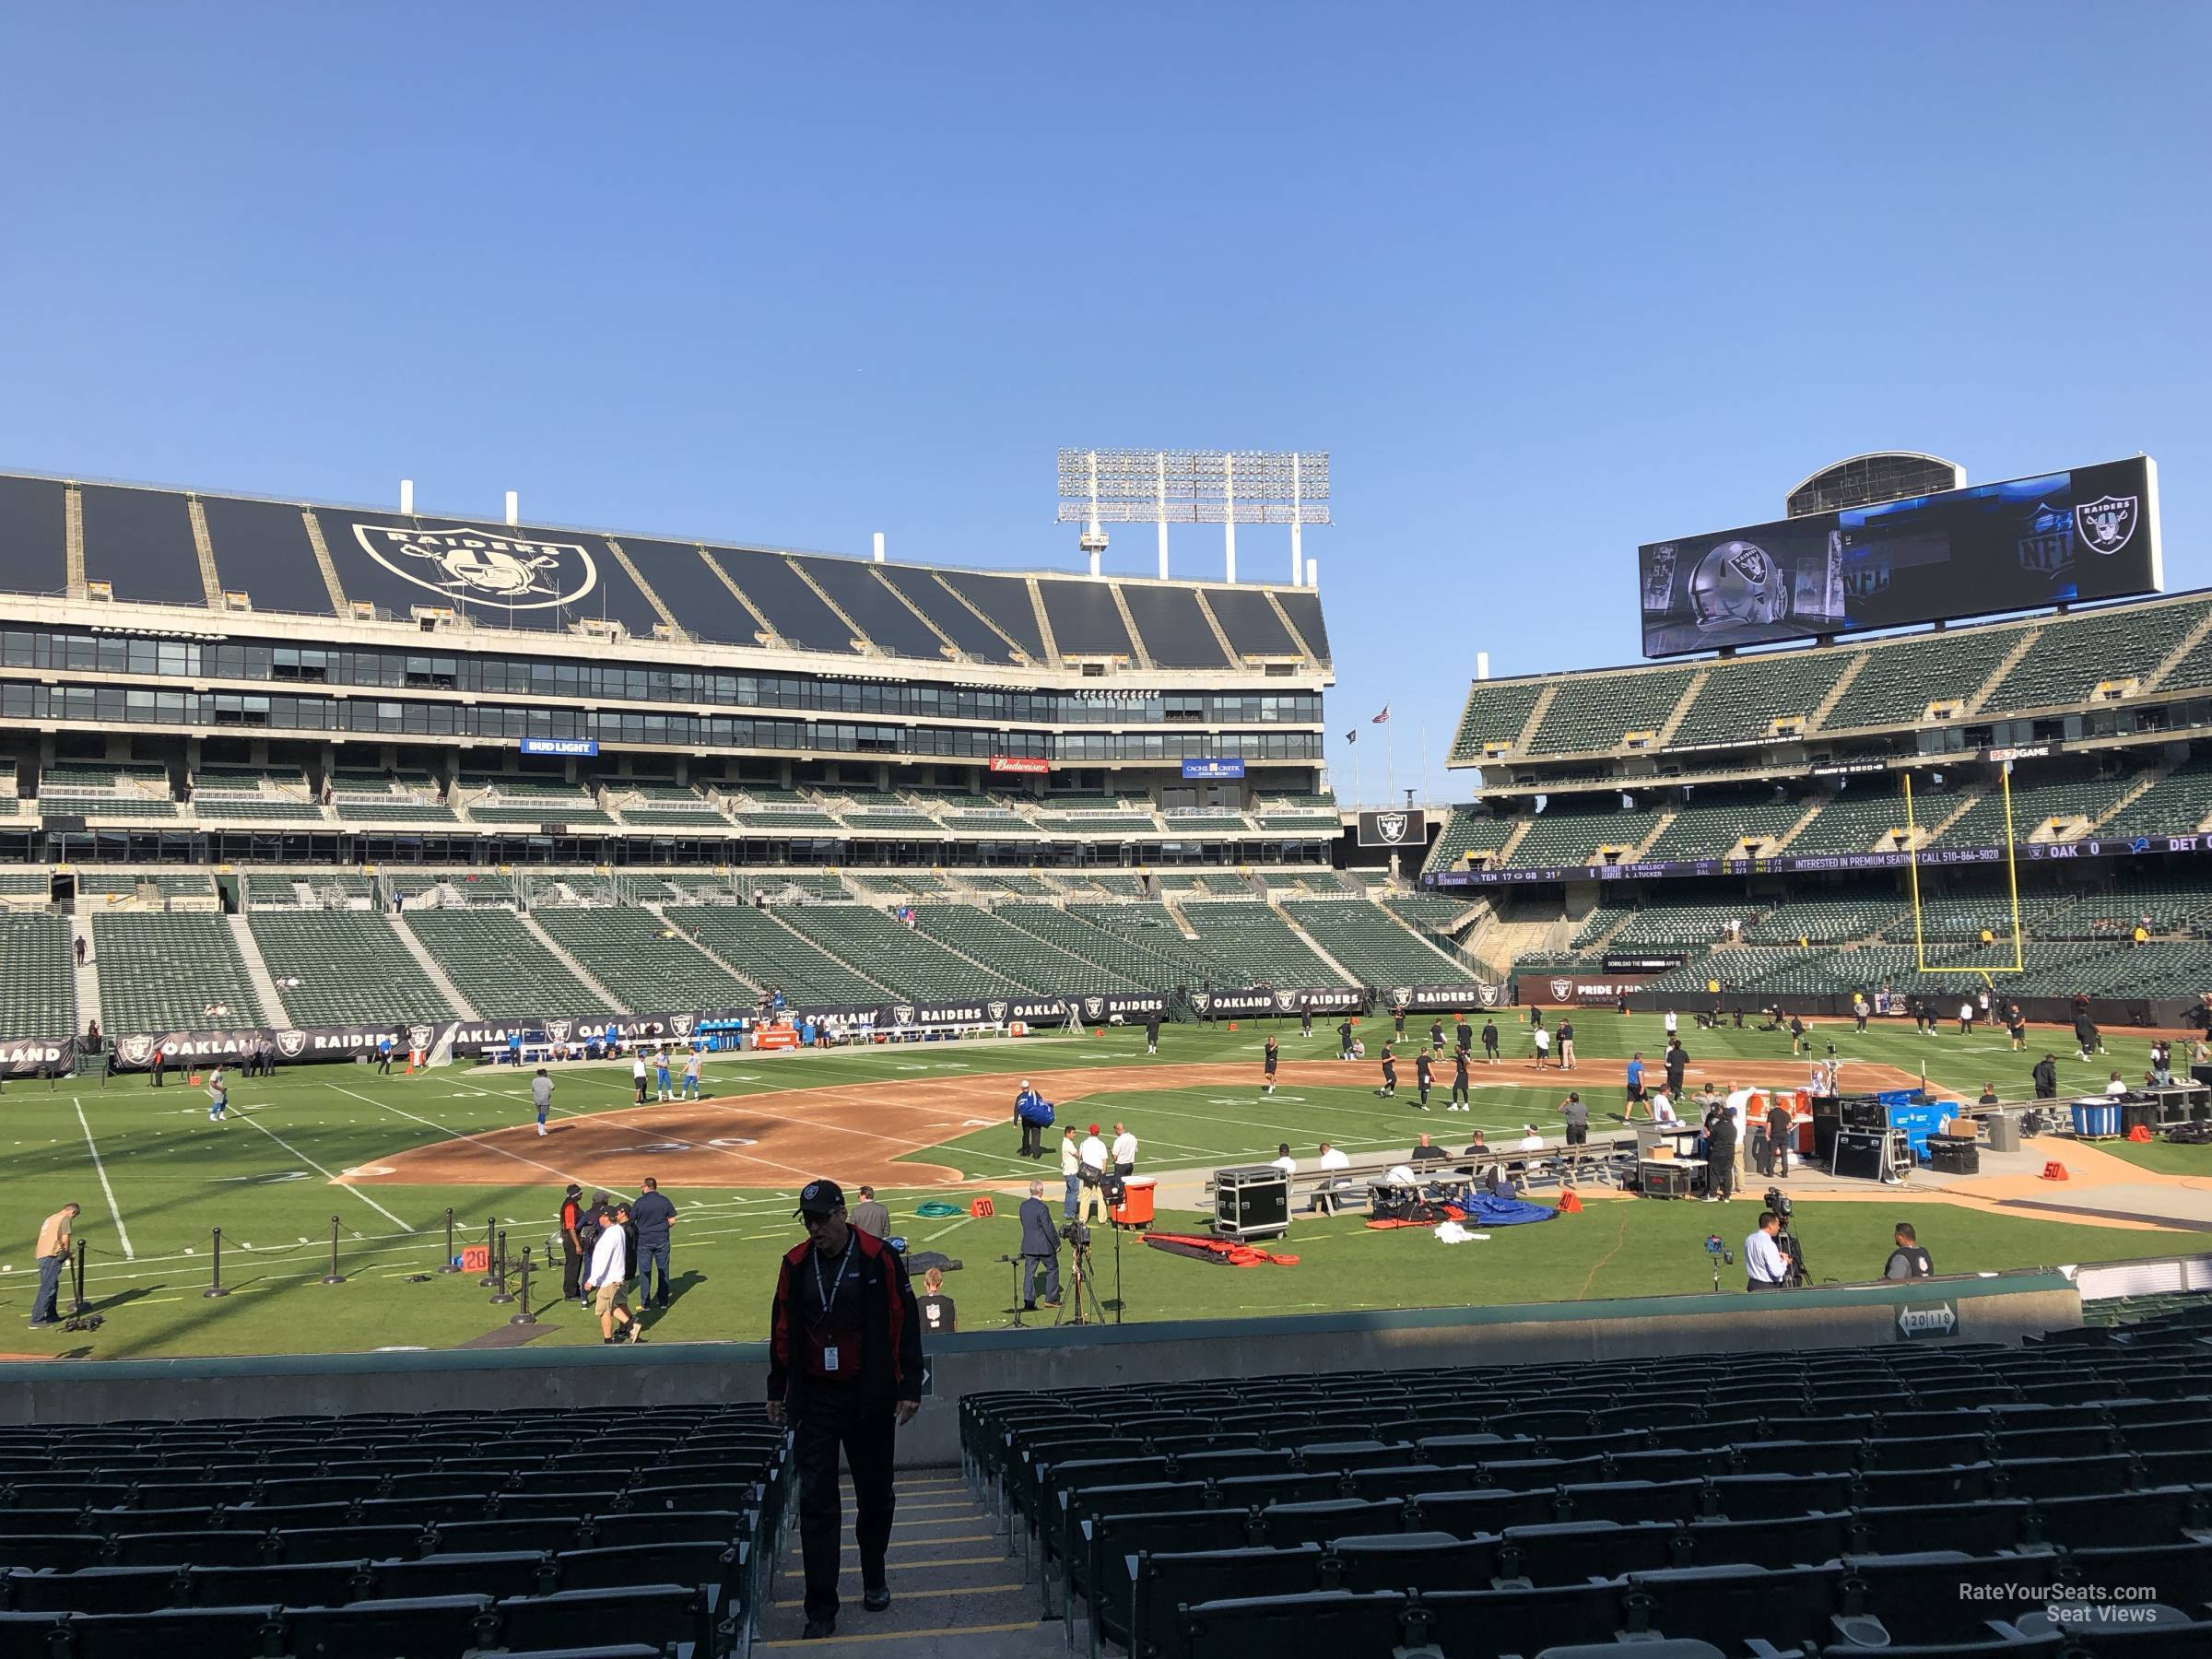 Oakland Raiders Seat View for Oakland Coliseum Section 121, Row 15